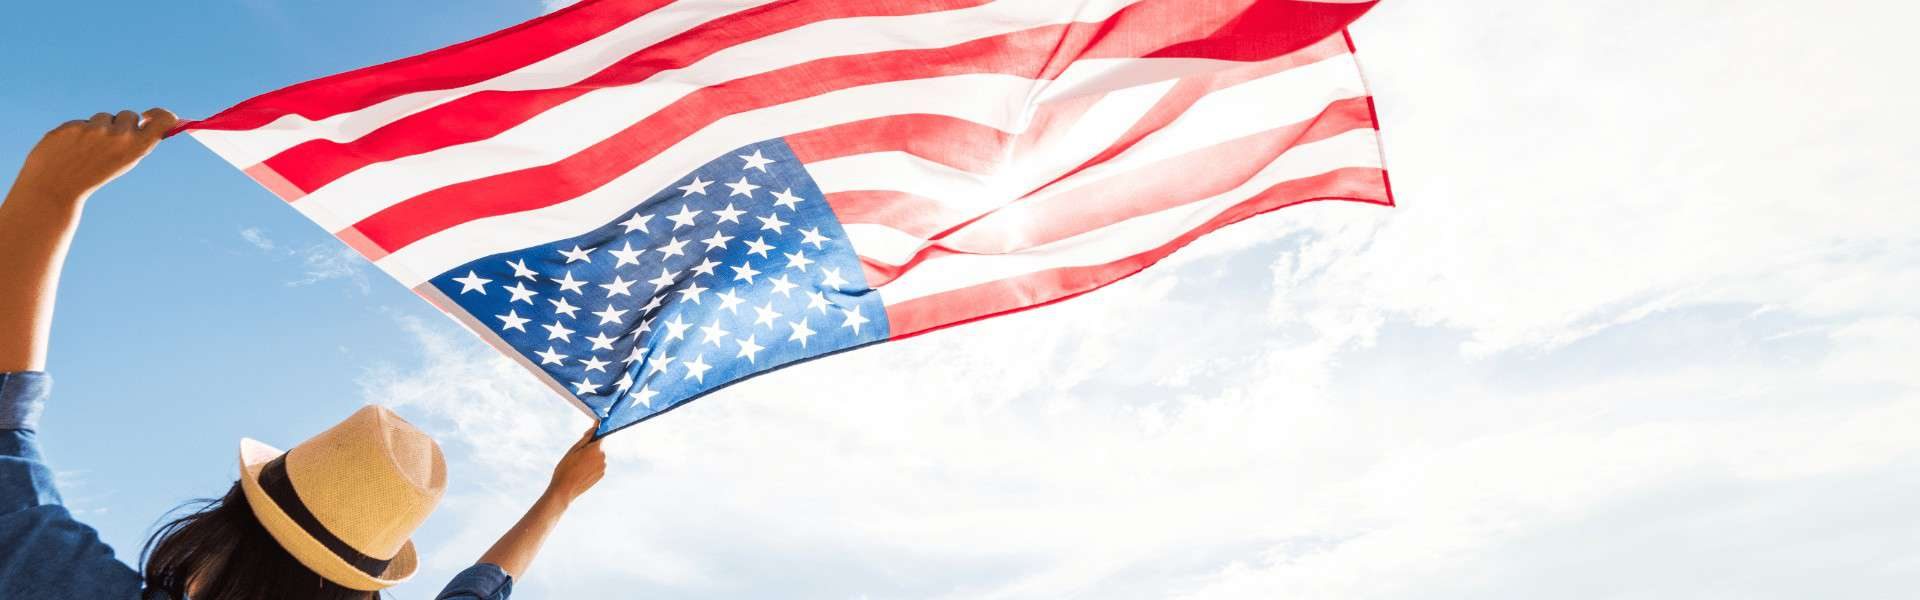 usa student visa, Study in USA